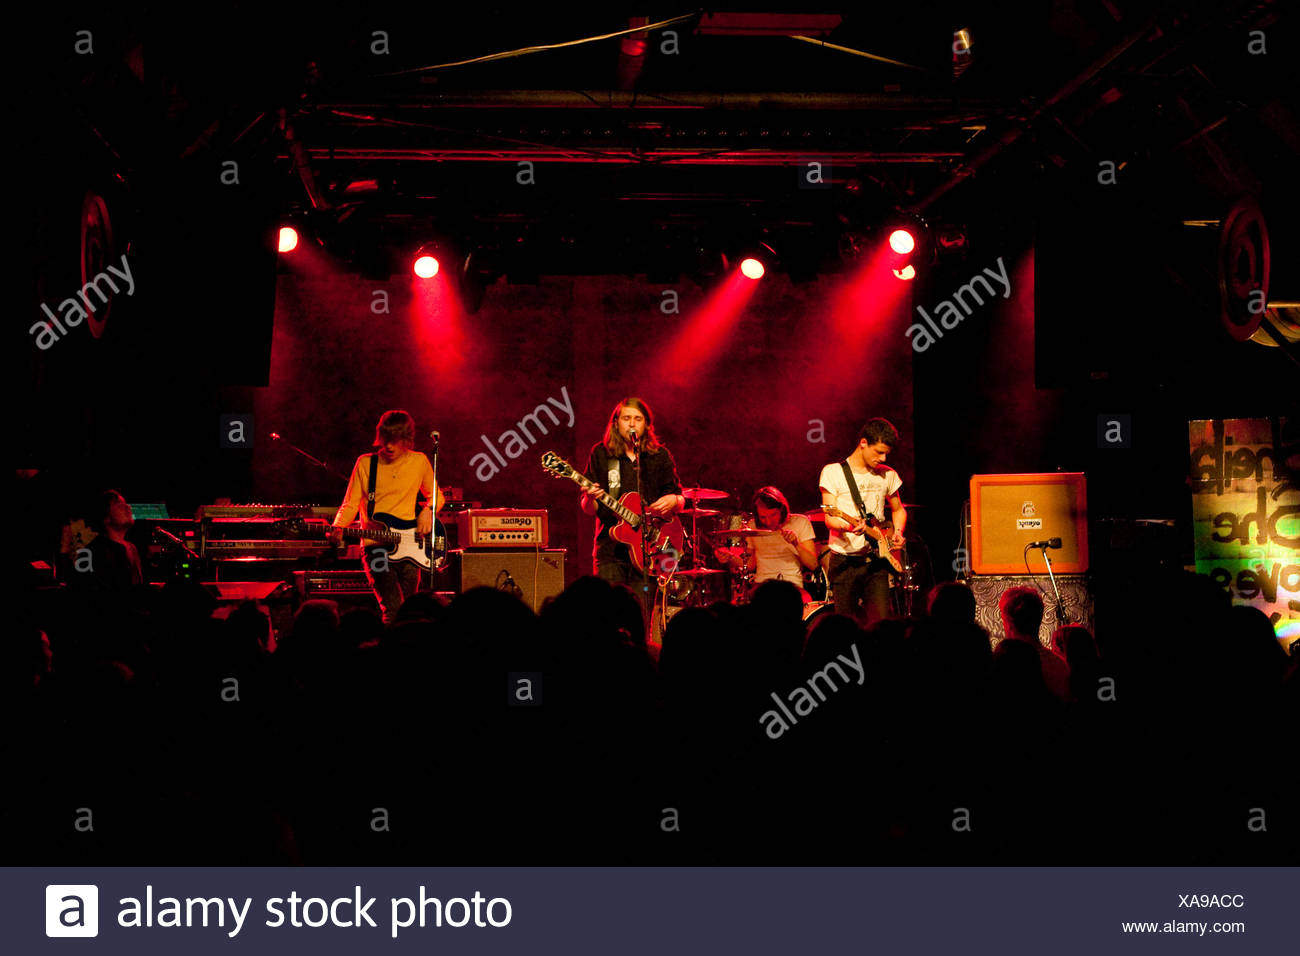 The Swiss pop band Sheila She Loves You, live at the Schueuer Concert Hall, Lucerne, Switzerland - Stock Image